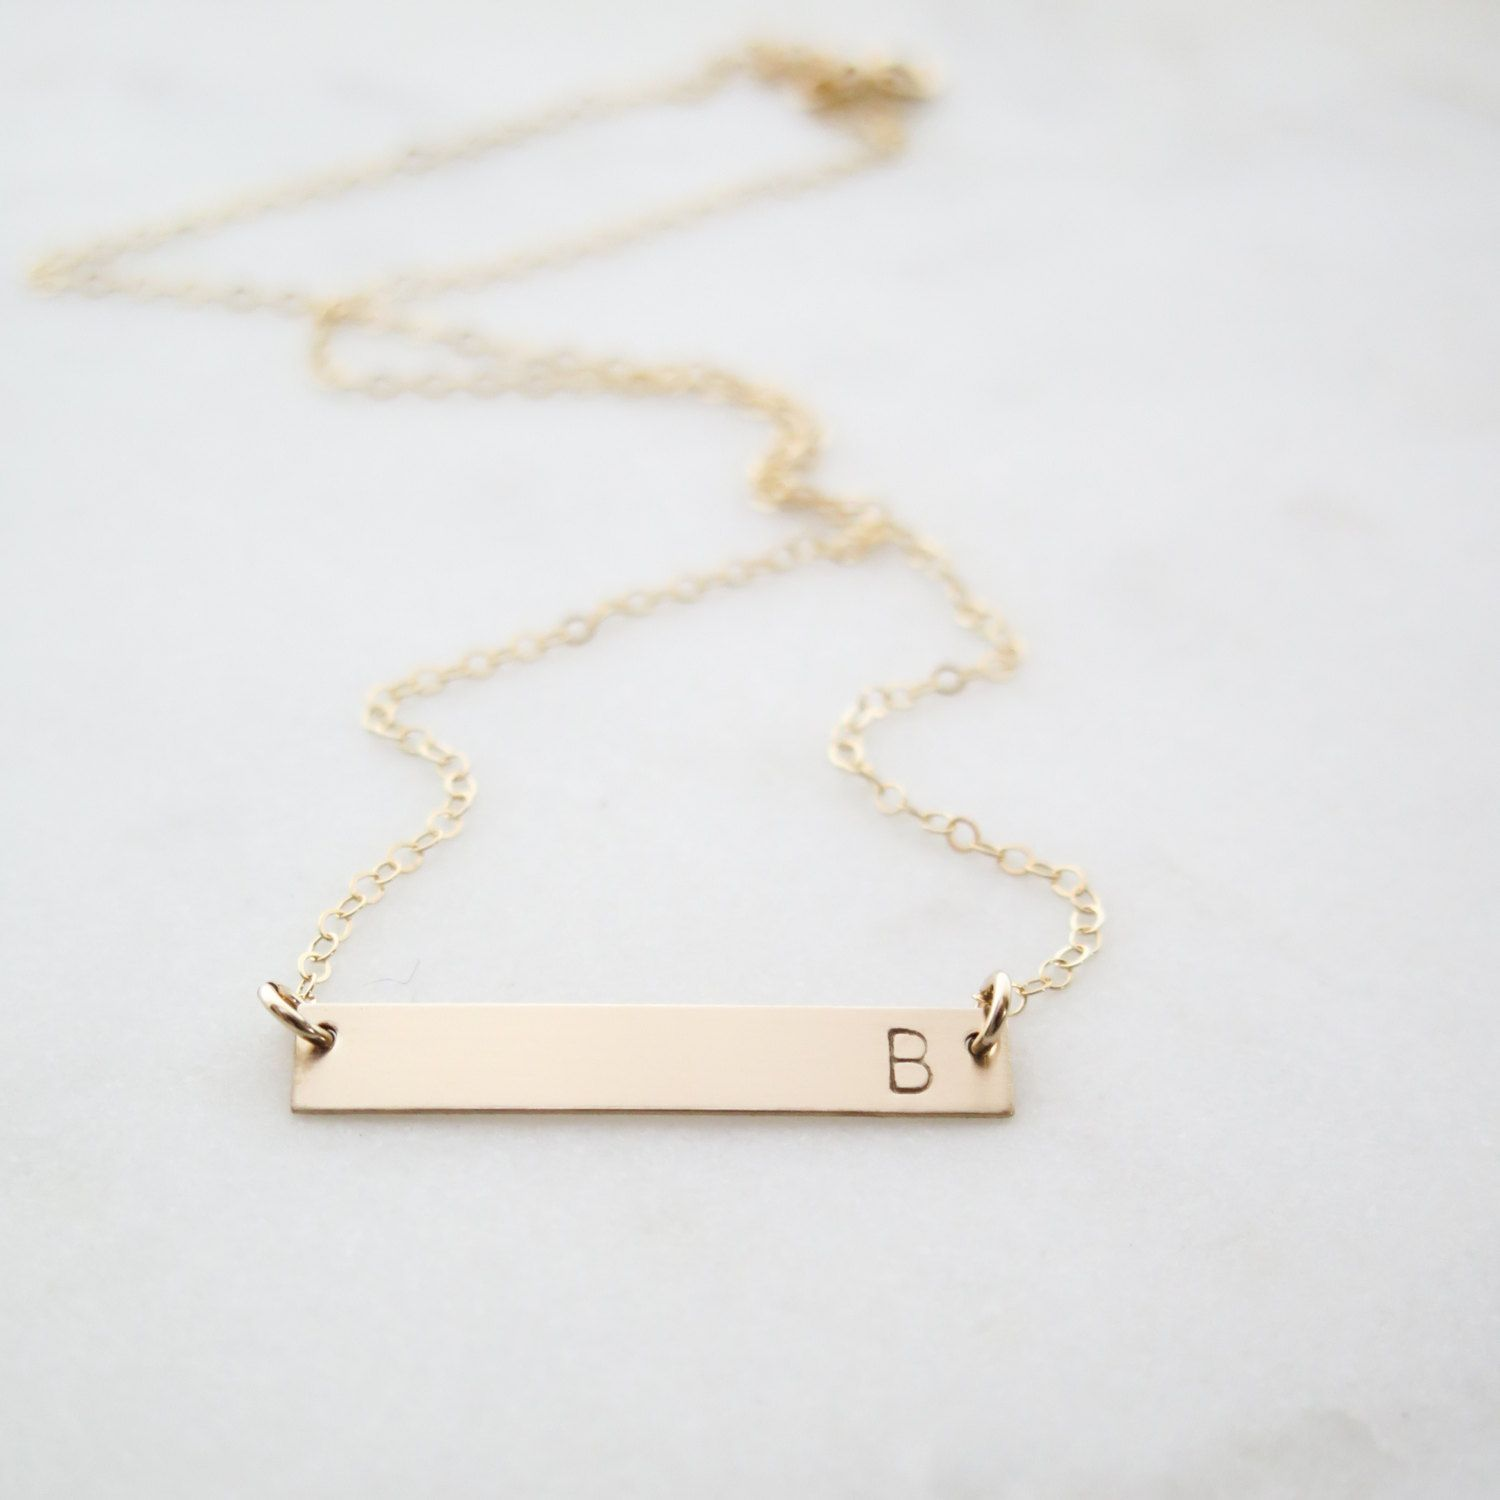 0196530e6fd537 Custom Initial Gold Bar Necklace - Simple, Dainty Letter Hand Stamped  Jewelry - by Betsy Farmer Designs